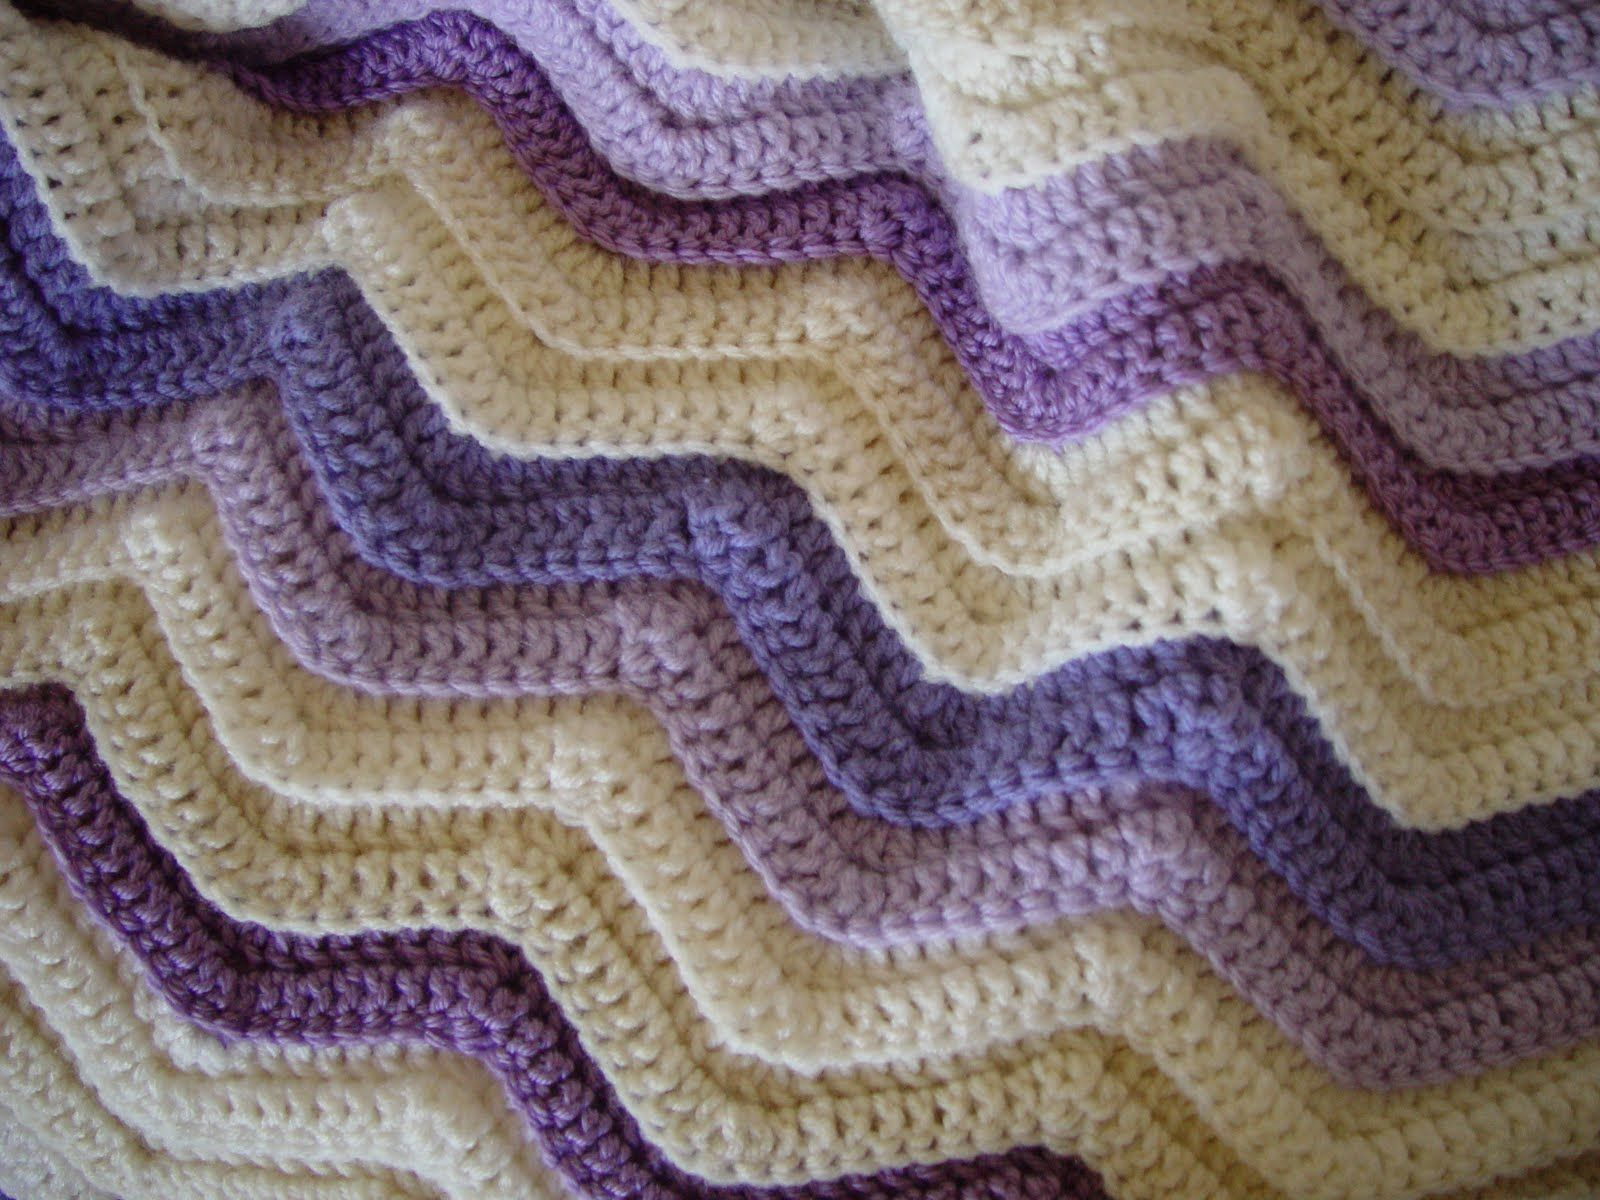 ripple afghan crochet pattern free | Hills and Valleys Baby Afghan ...